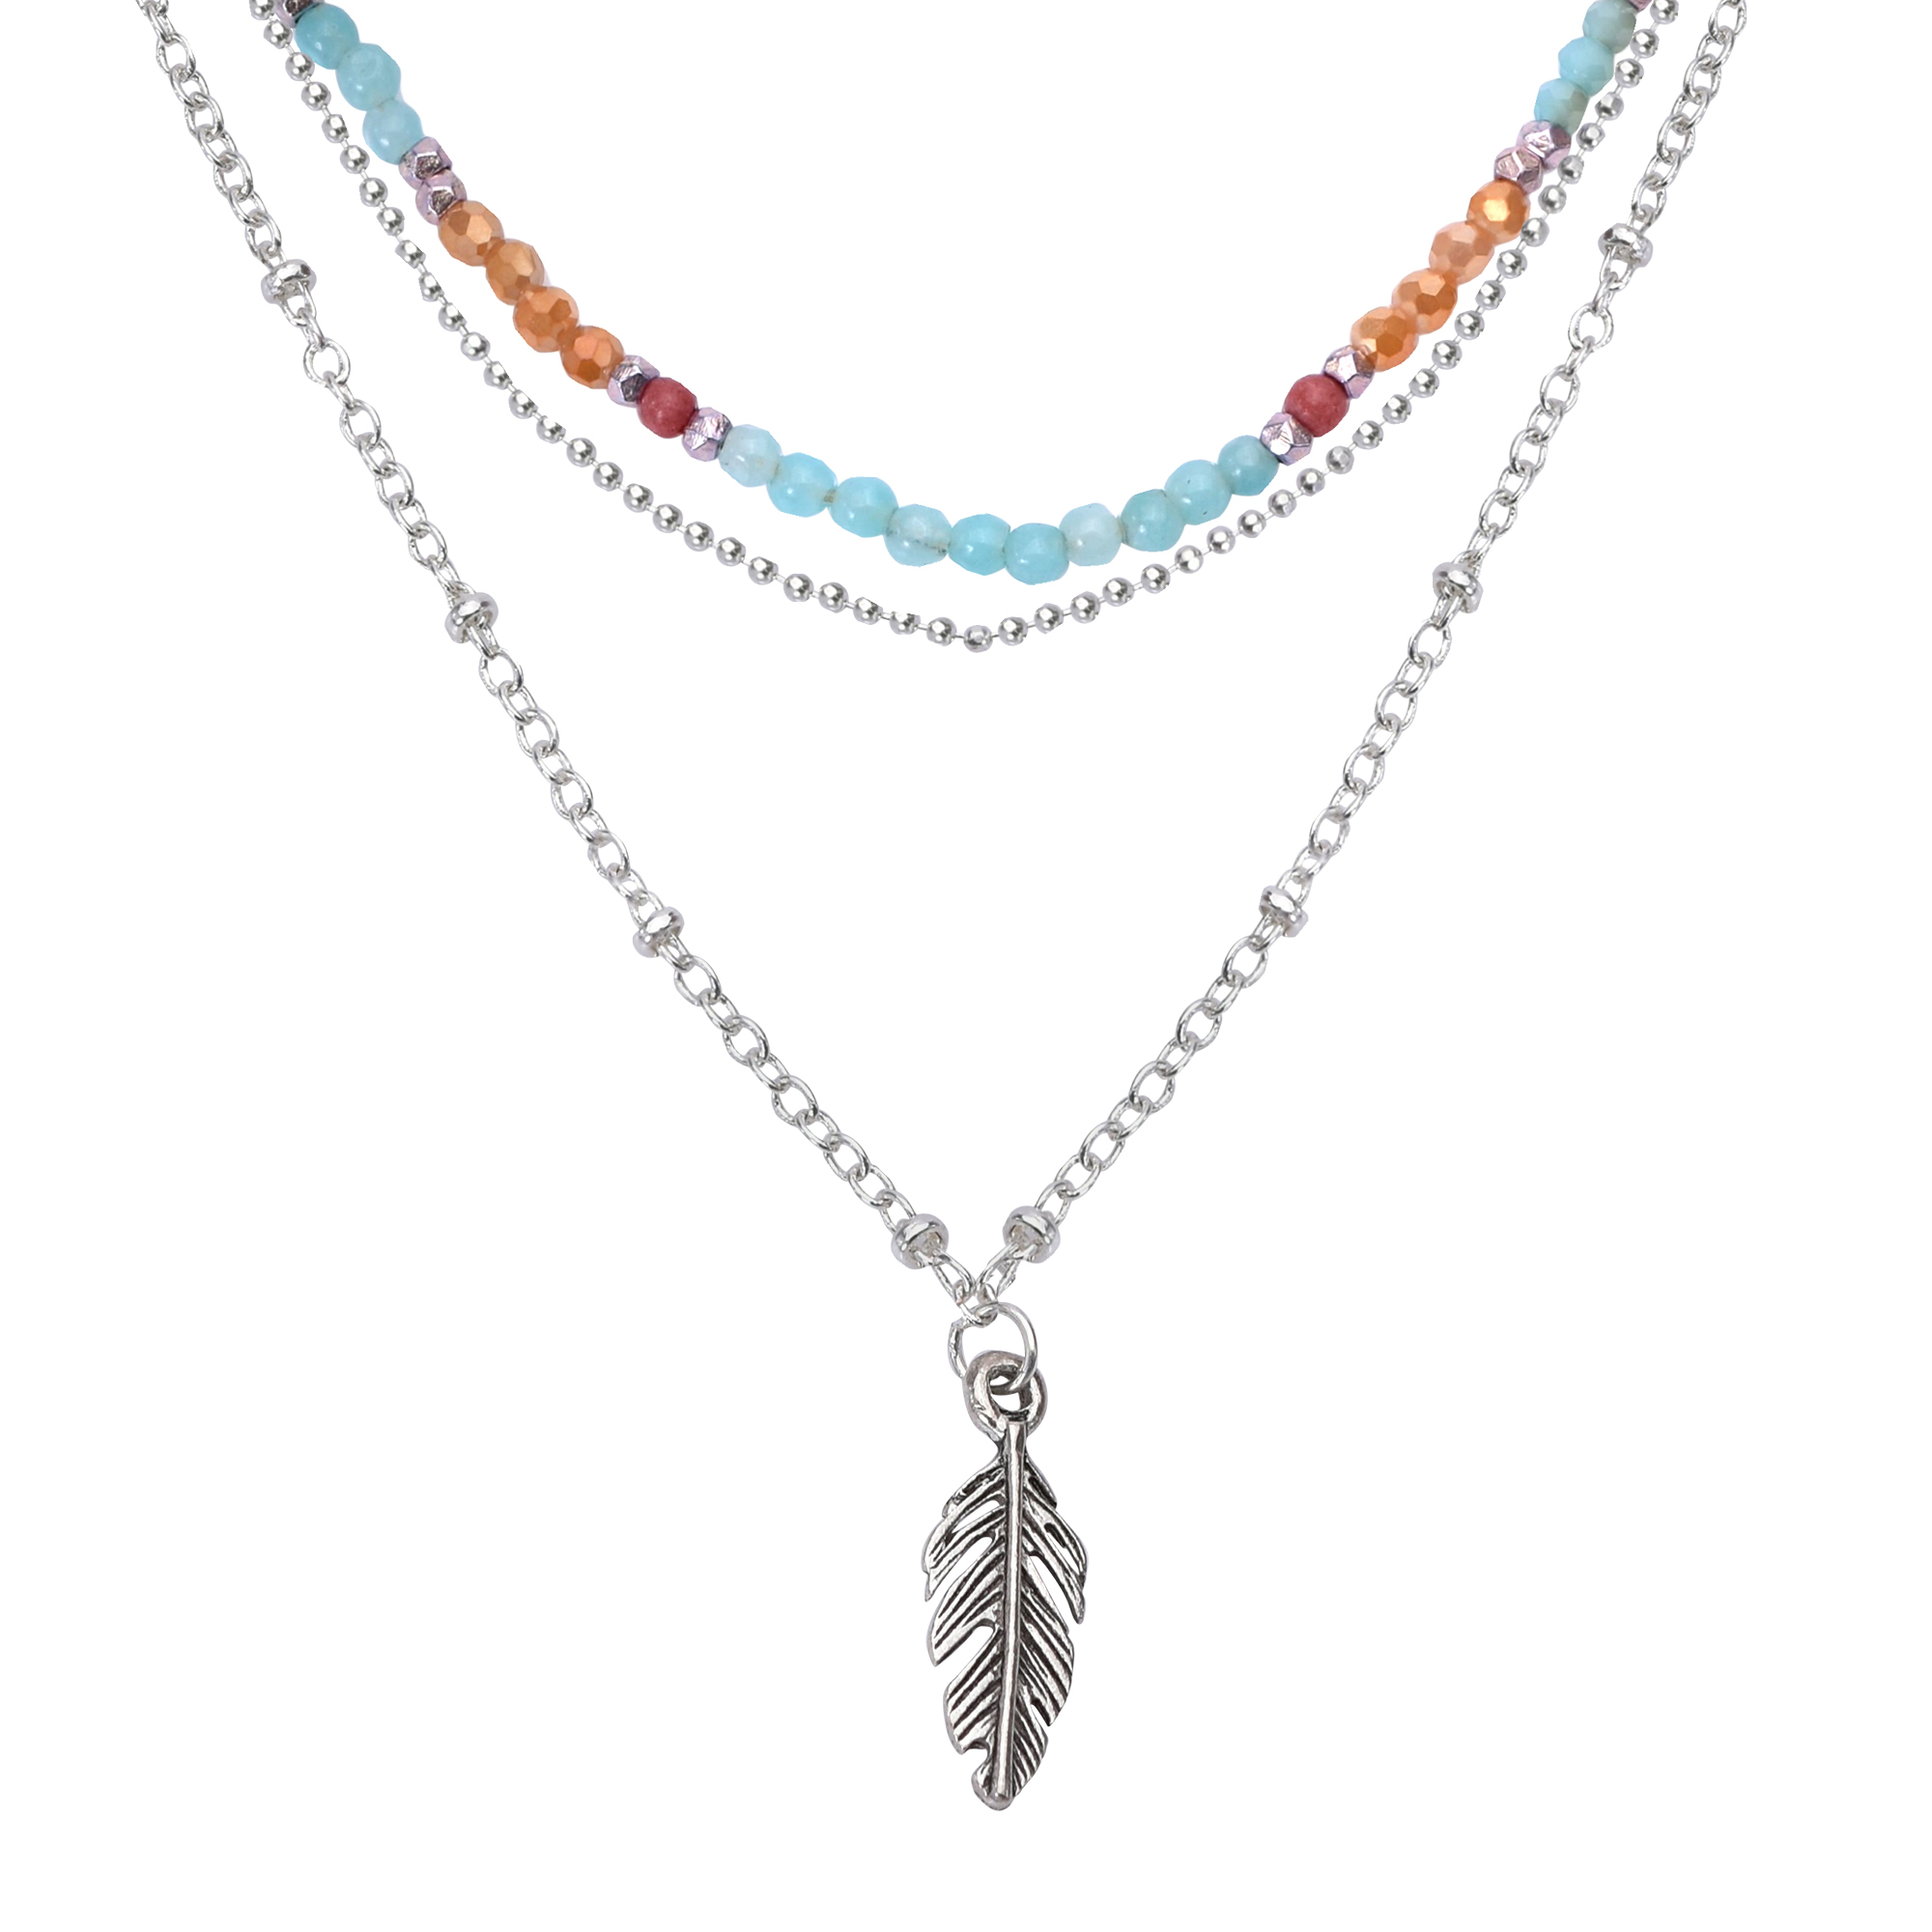 Details About Boho Chic Silver Feather Pendant With Multi Colored Quartz Layered Necklace Throughout Recent Single Feather Pendant Necklaces (View 18 of 25)